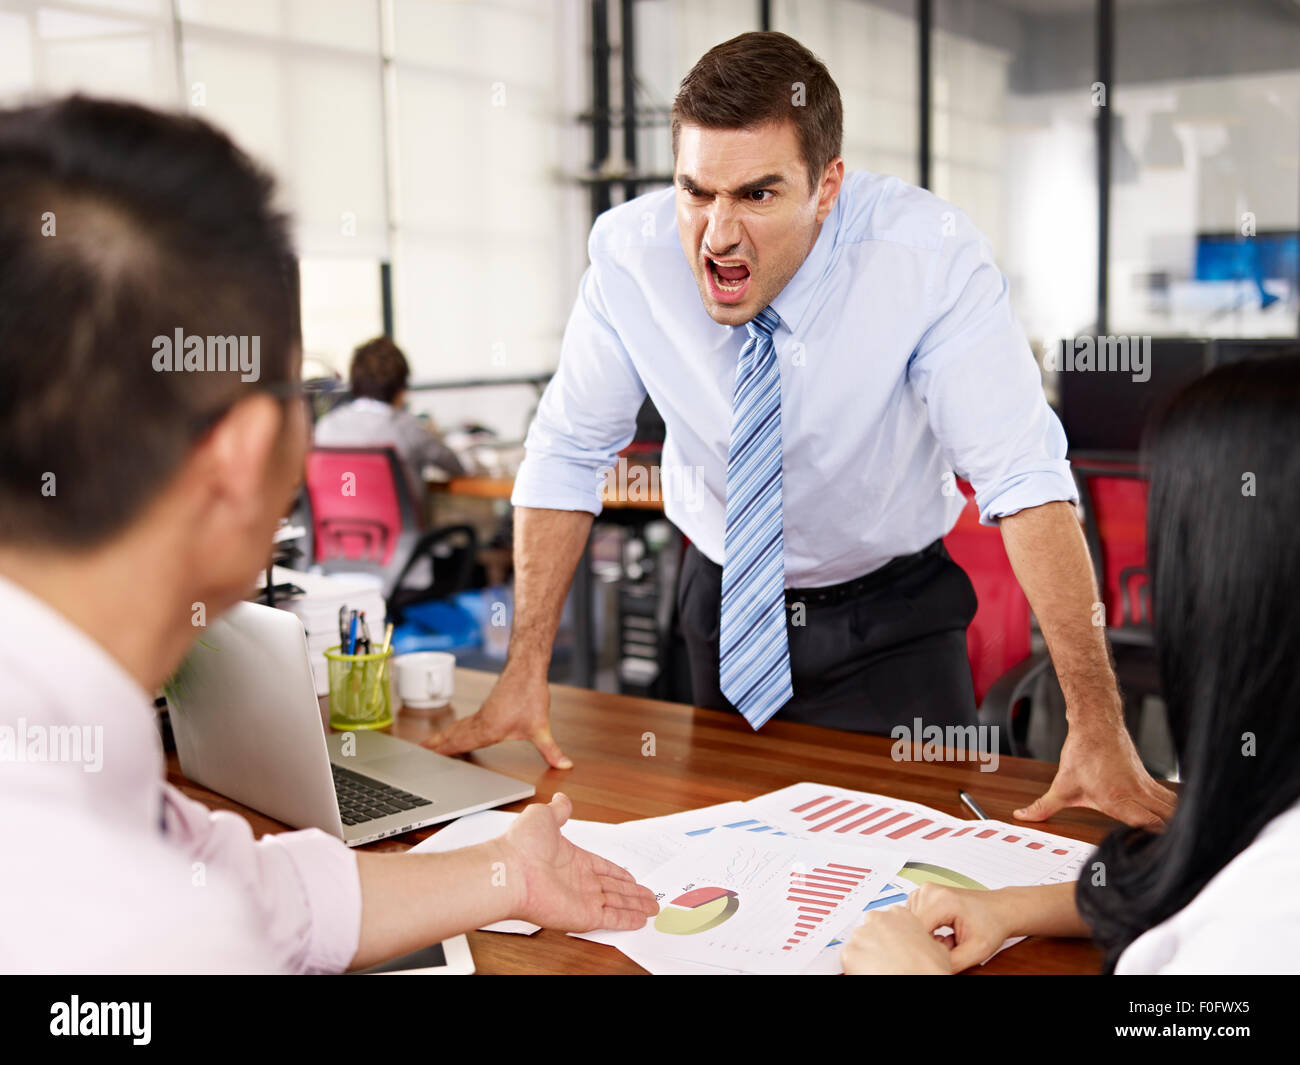 bad-tempered caucasian business executive yelling at two asian subordinates in office. - Stock Image